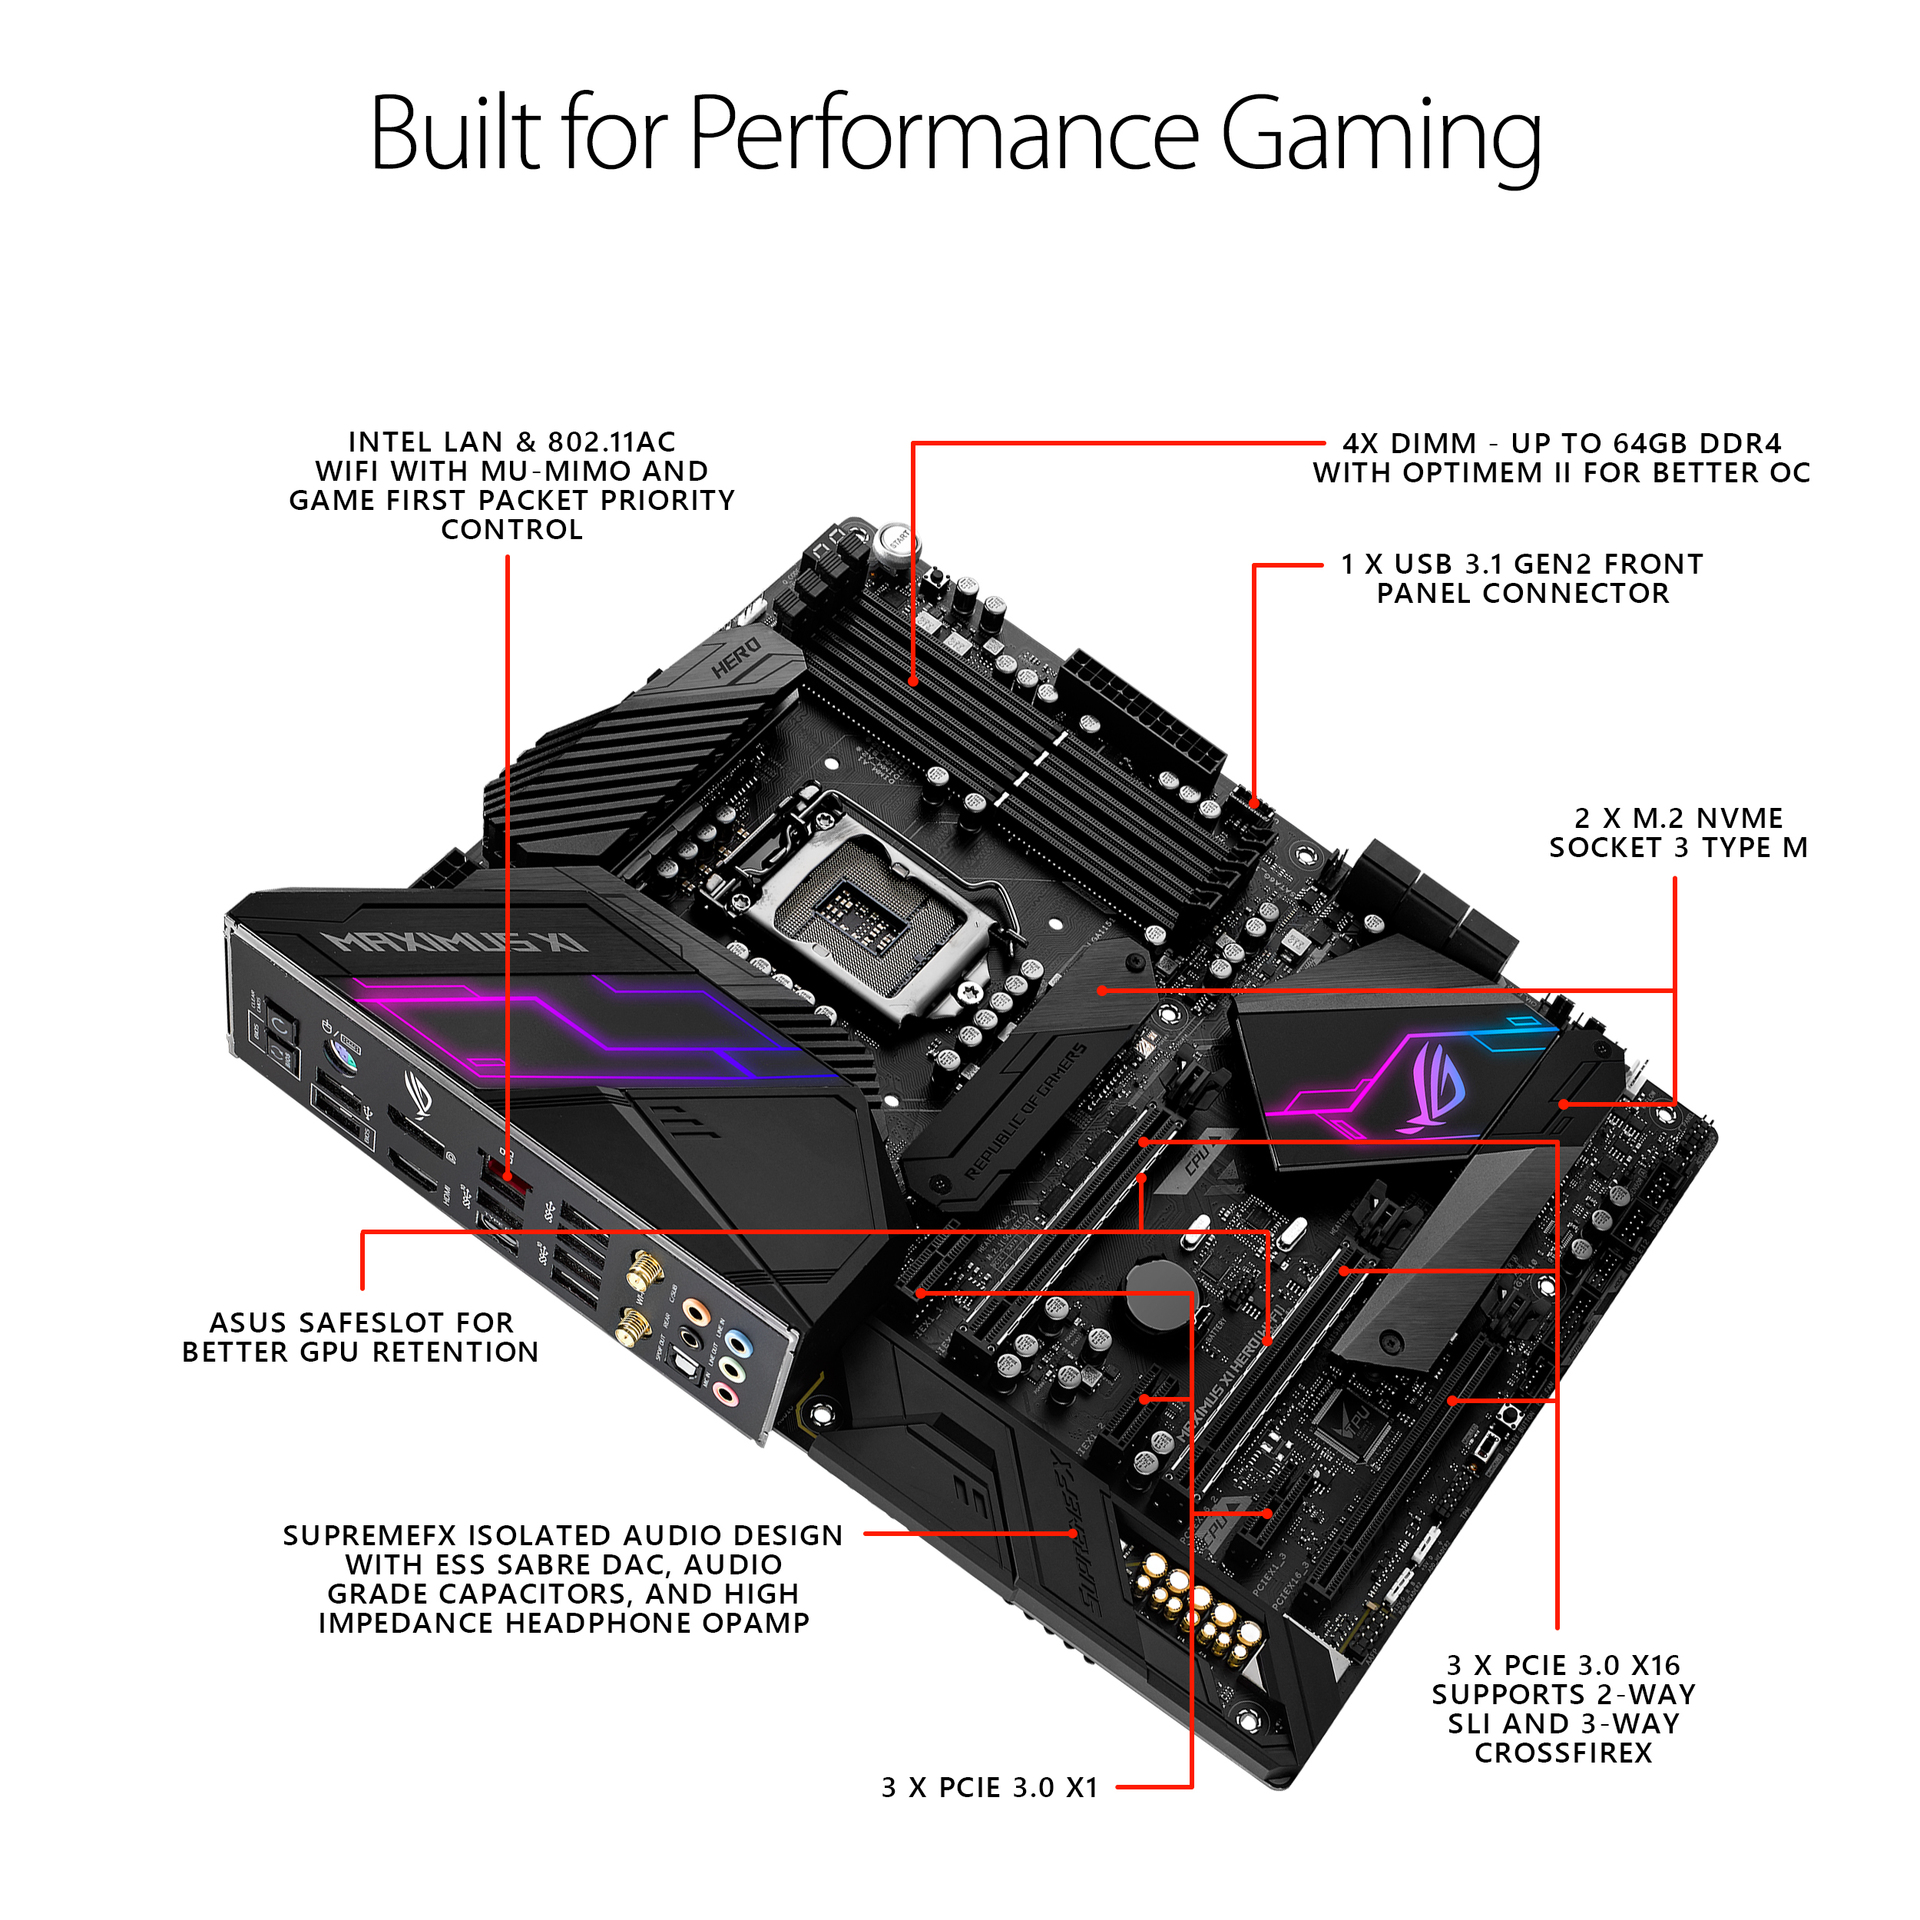 Asus Rog Maximus Xi Hero Z390 Gaming Motherboard Lga1151 Intel 8th Circuit Diagram Of The Power Train A Typical Atx Computer Product View Press Enter To Zoom In And Out